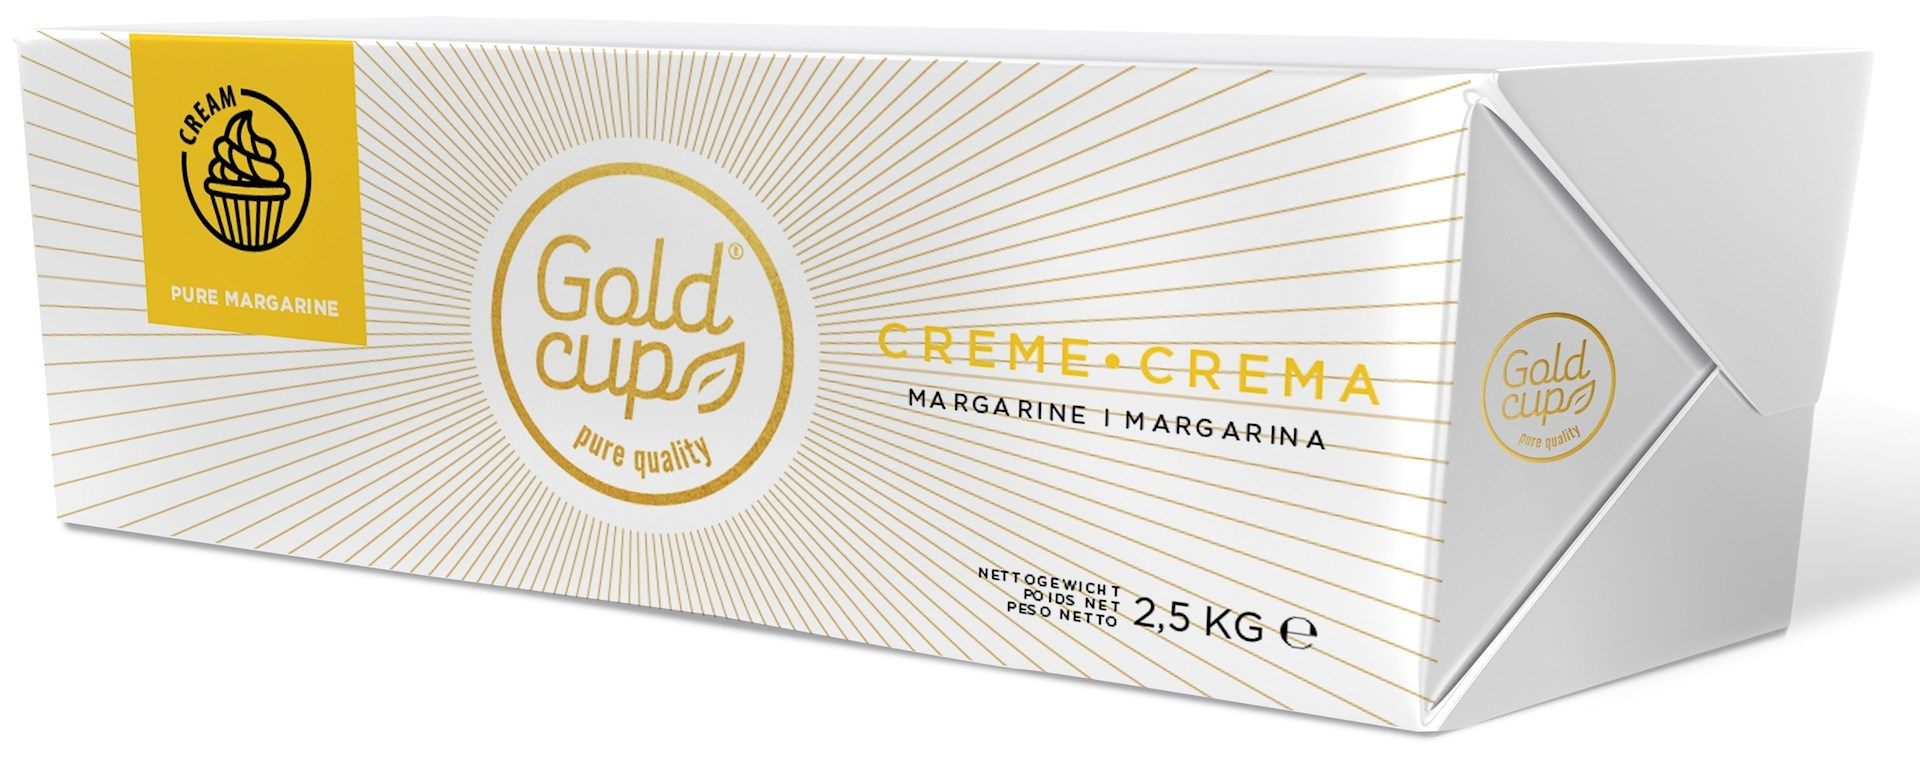 Productafbeelding Gold Cup Crème margarine Plak